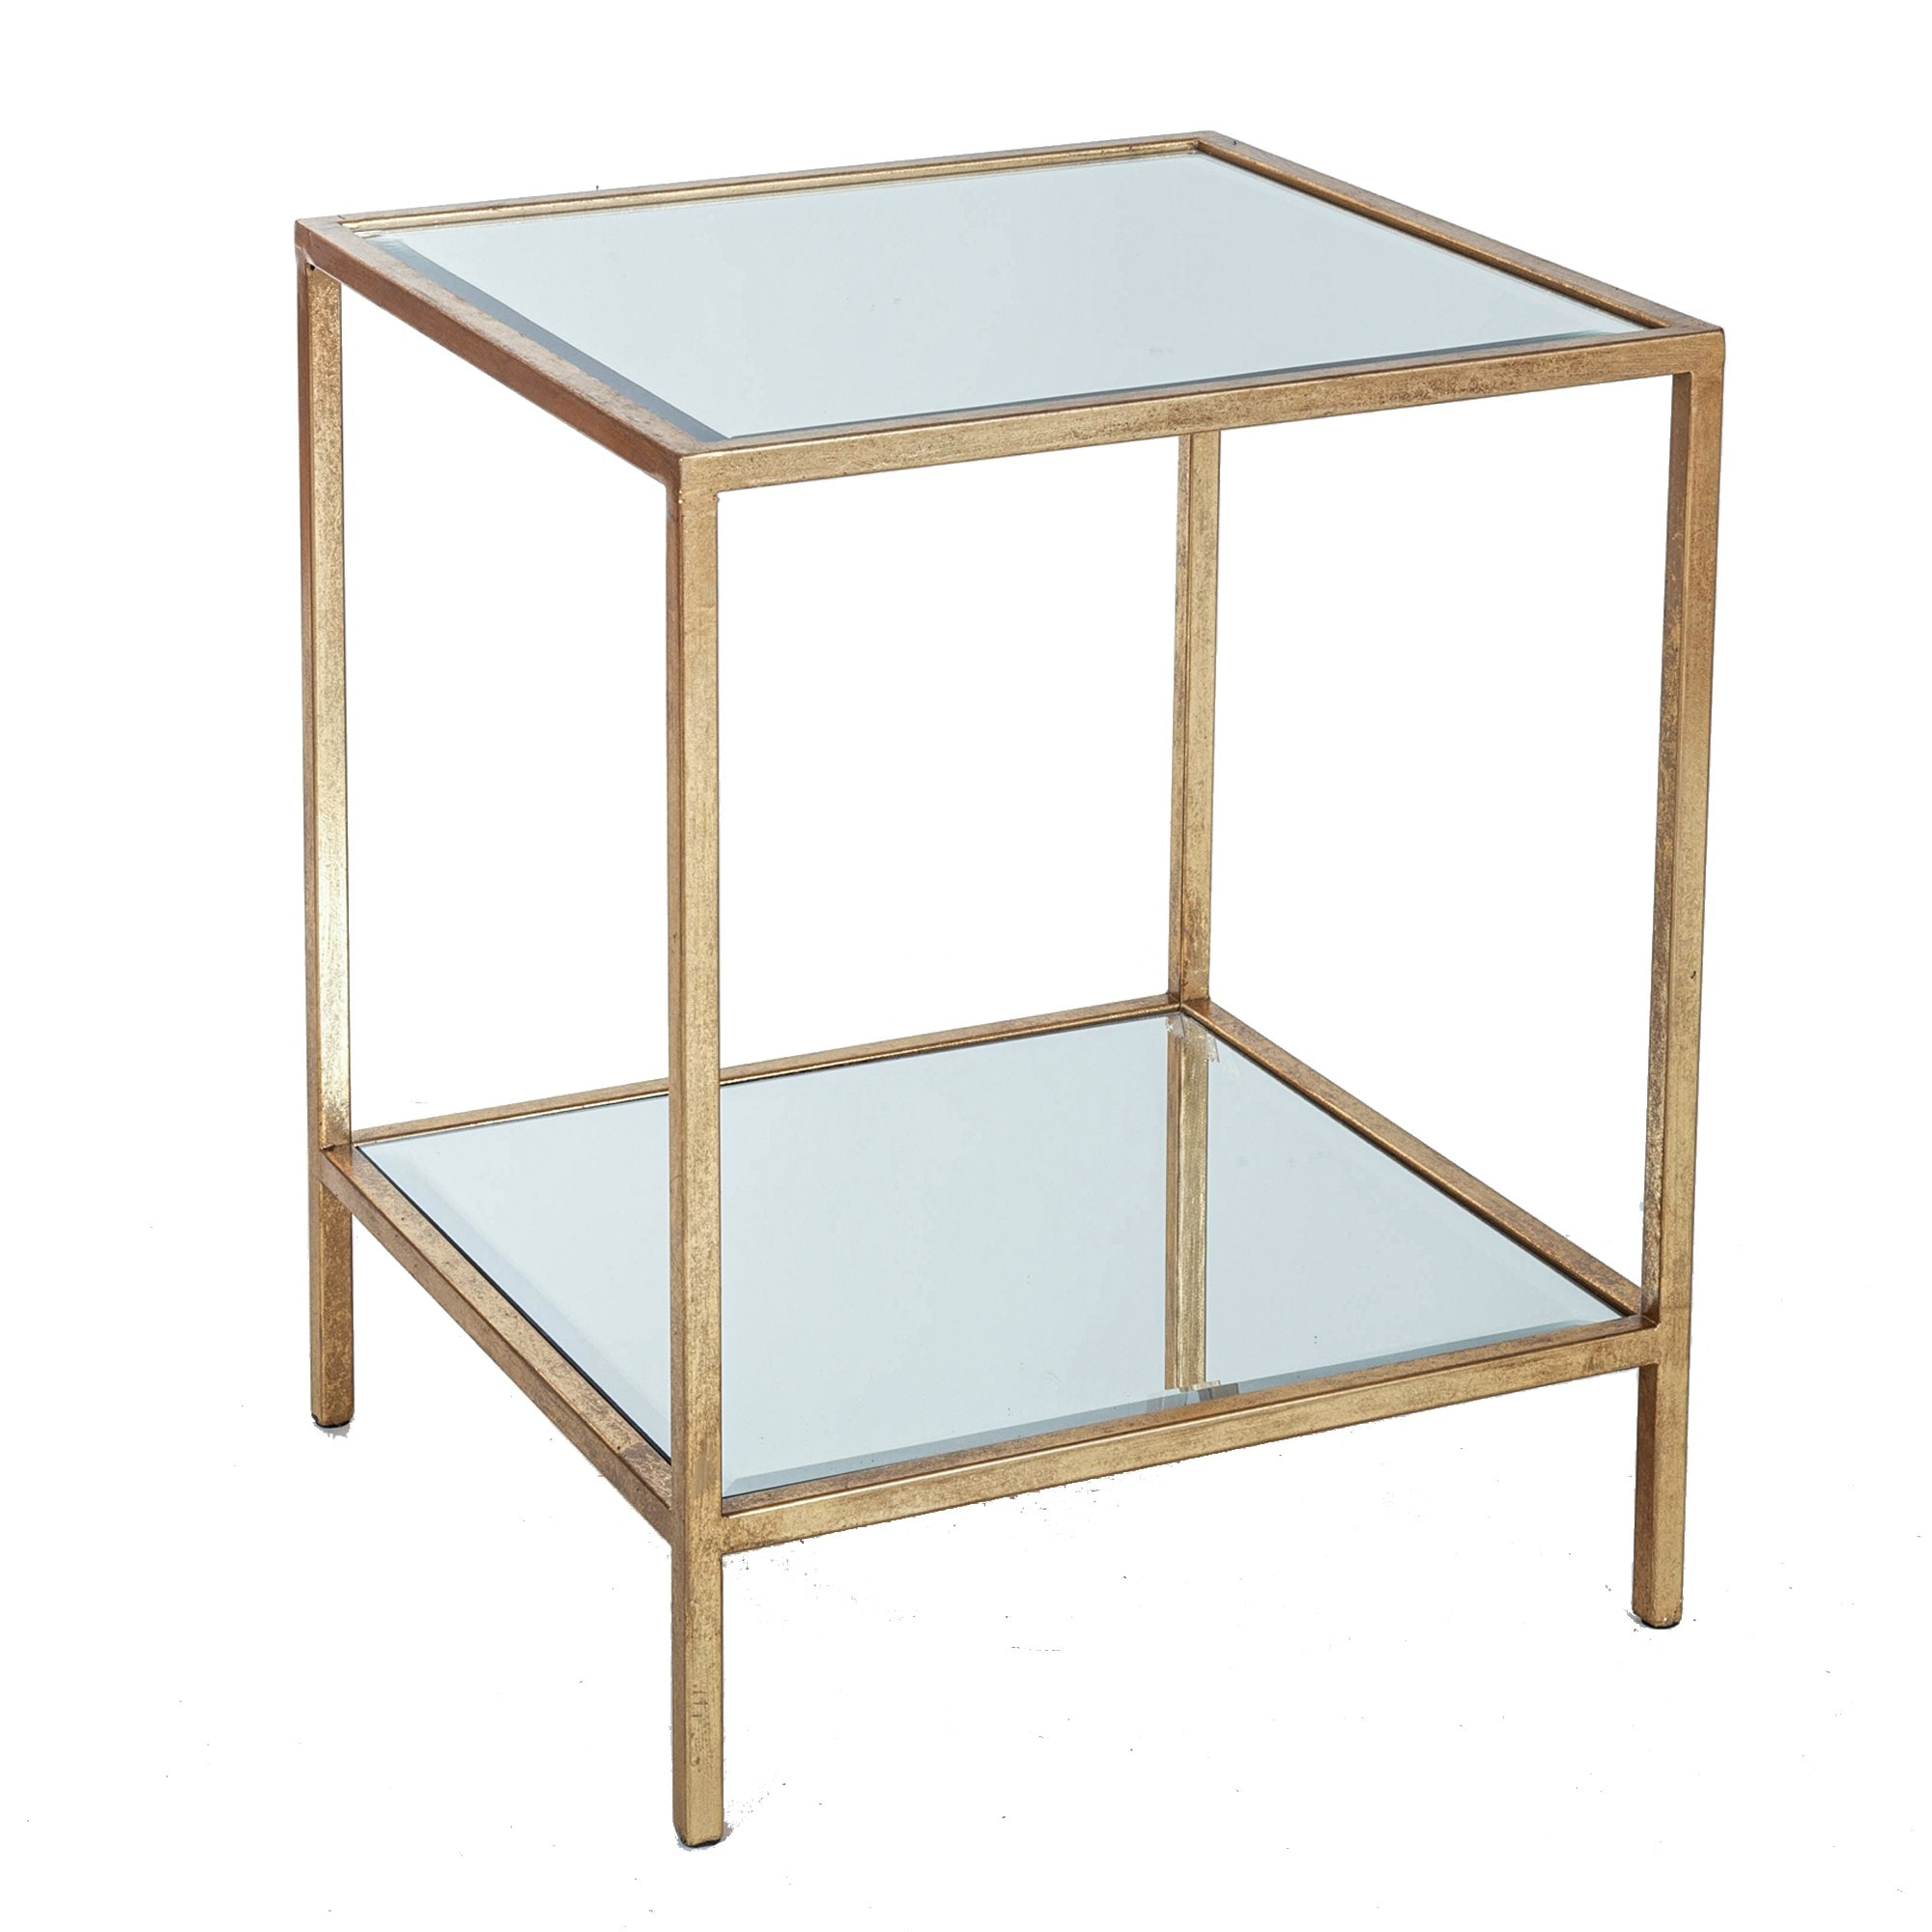 Picture of: Cubic Side Table Geometric Table Homesdirect365